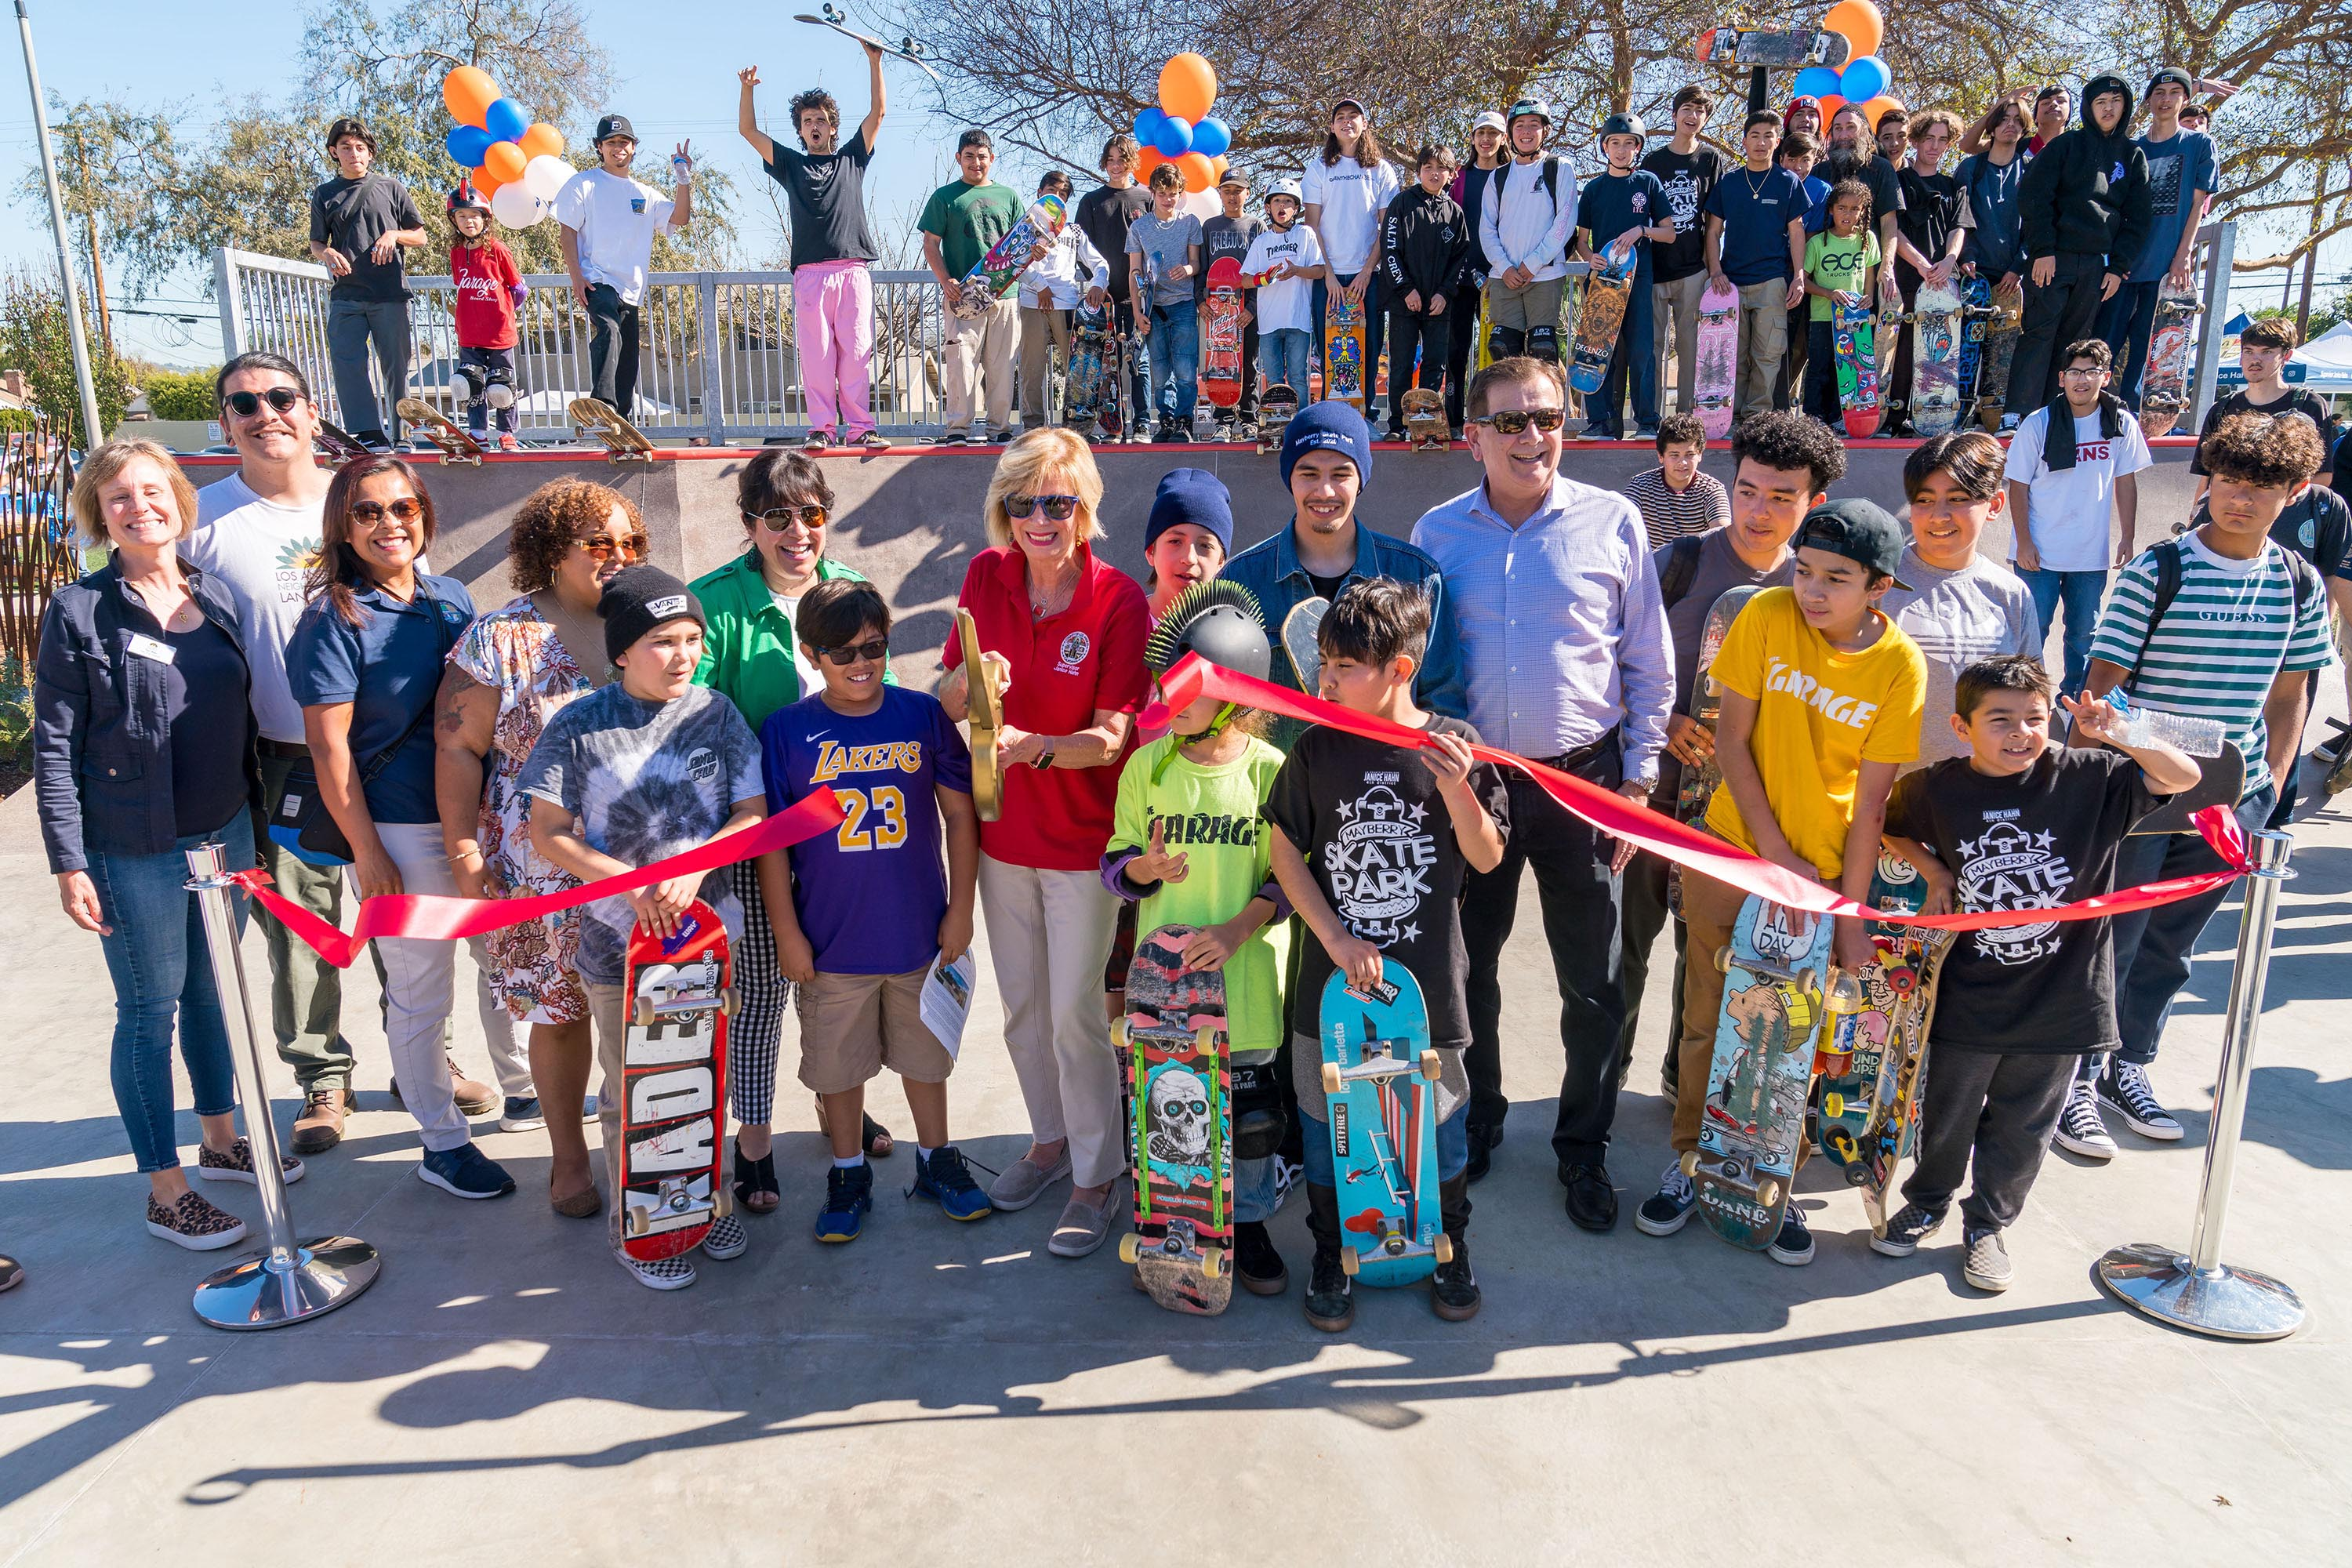 District 4 – Supervisor Janice Hahn<br> <b>Feb. 1, 2020 – Mayberry skatepark grand opening. </b><br> <i>Photo by Chris Valle / For the Board of Supervisors</i>